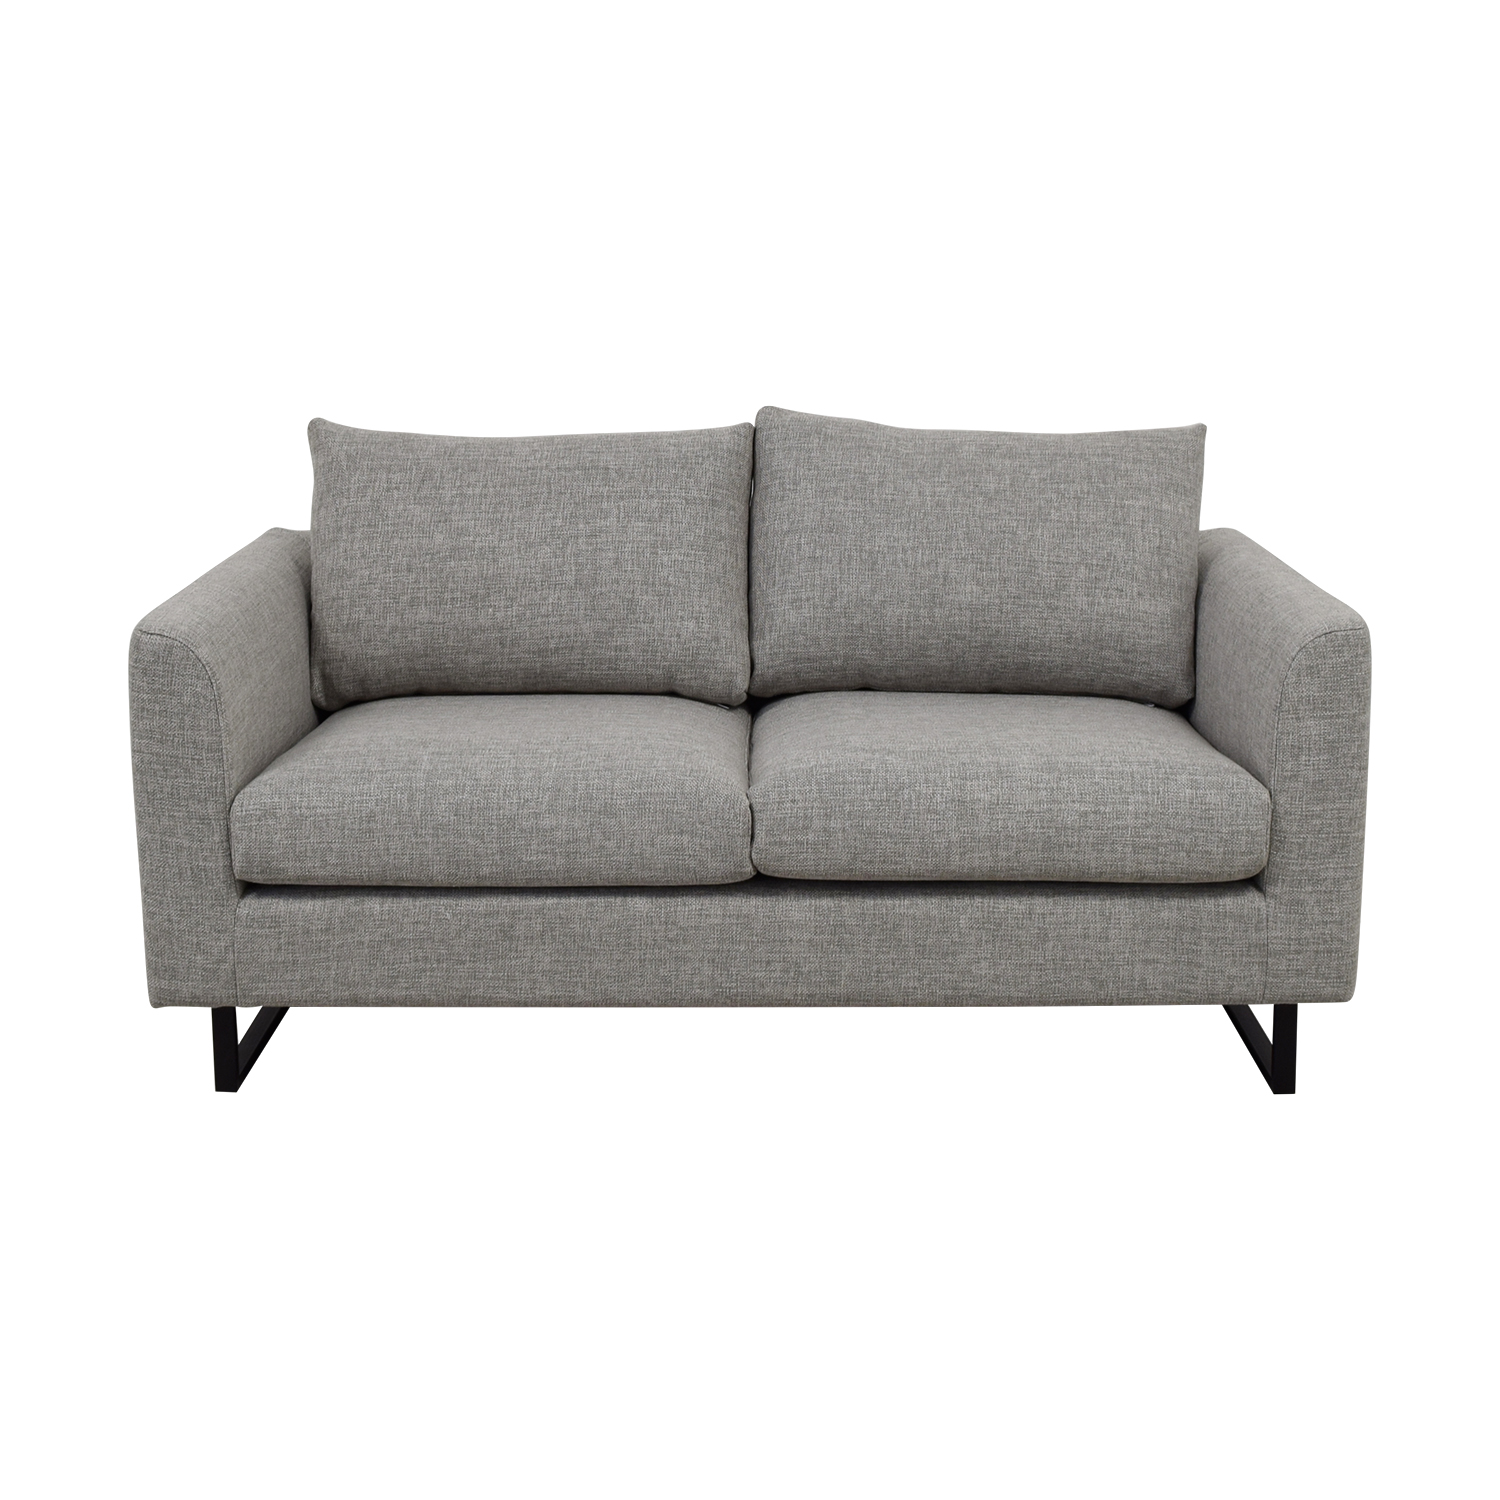 Owens Gray Loveseat Sofa